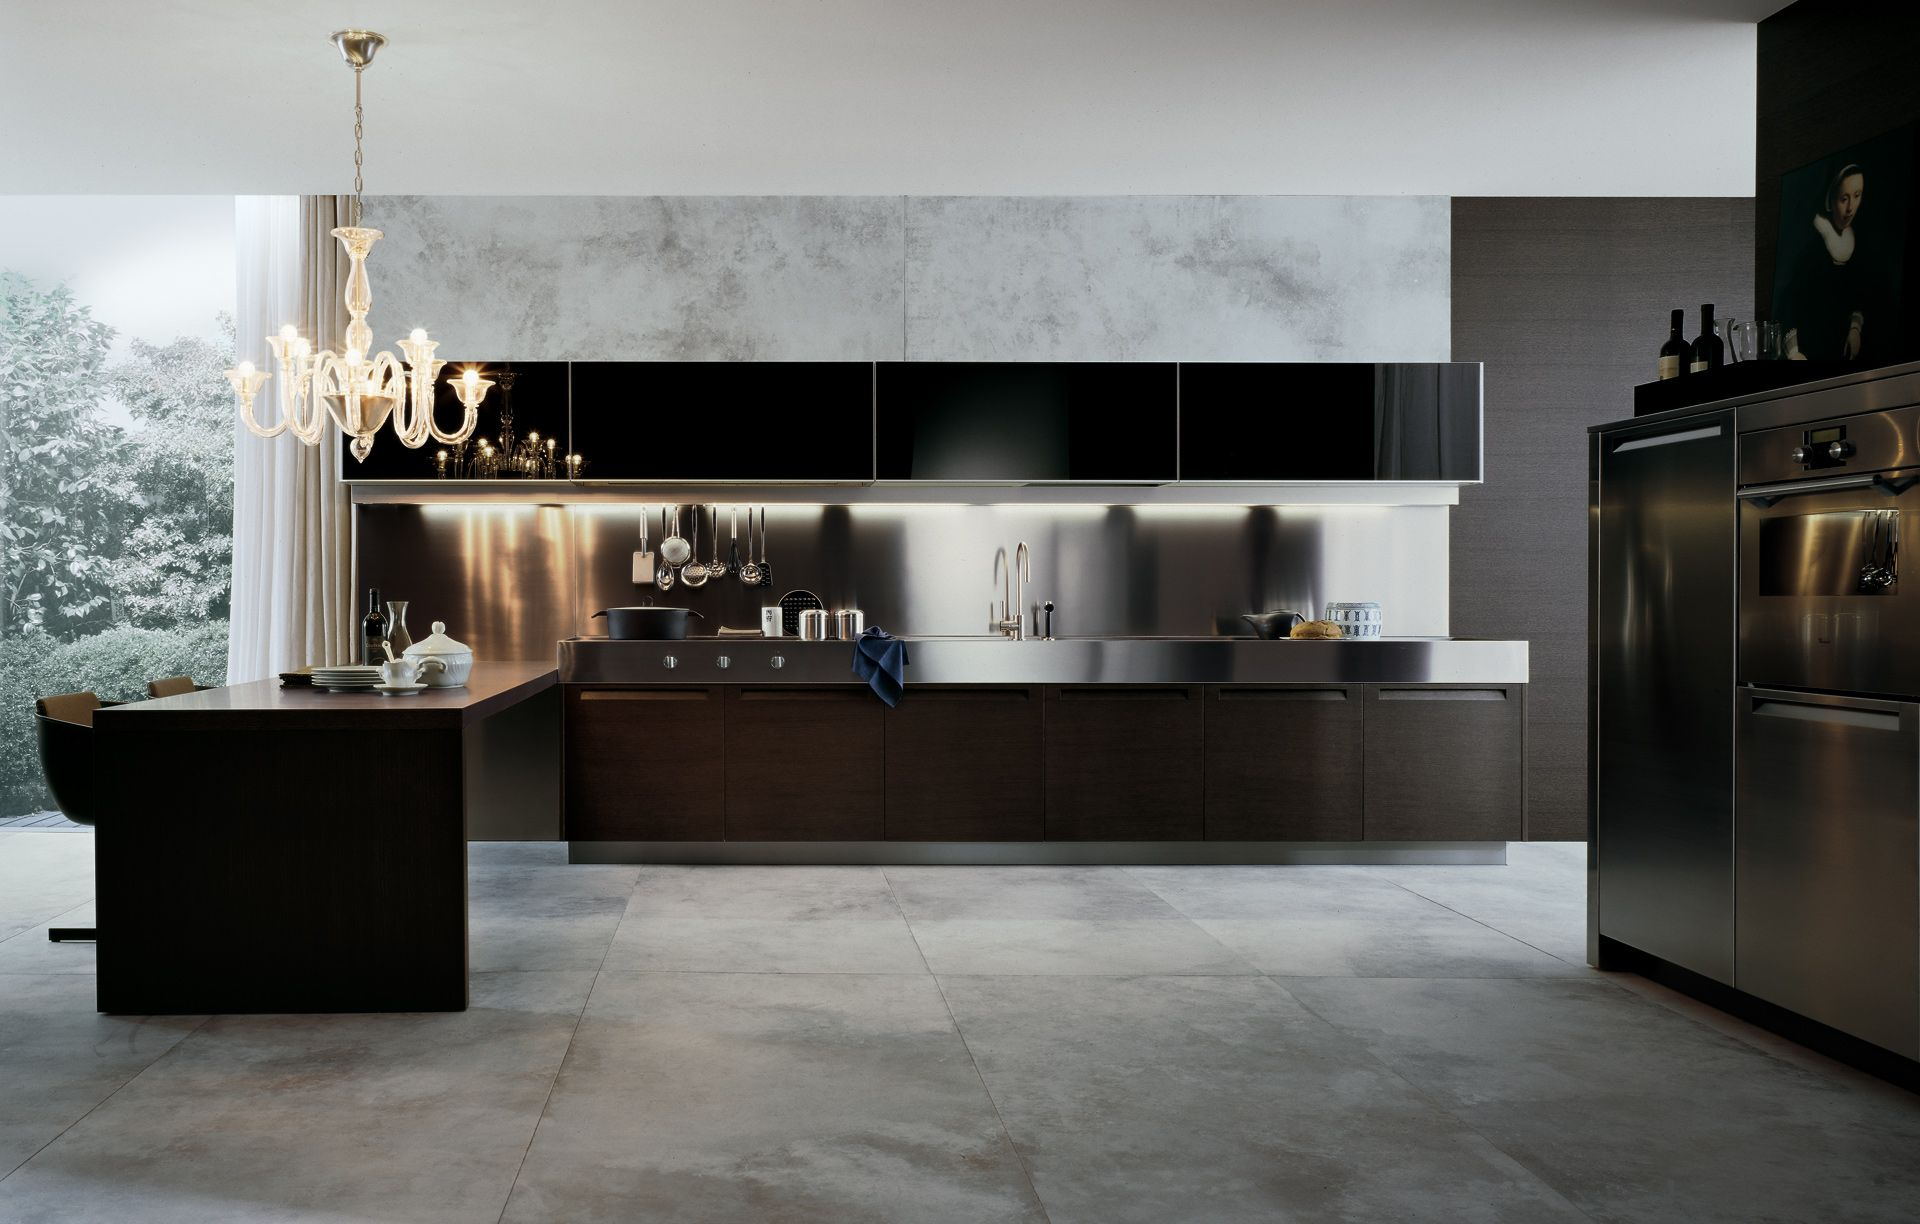 Minimal kitchen cabinetry designed by poliform switch modern in the house pinterest - Keuken porcelanosa ...